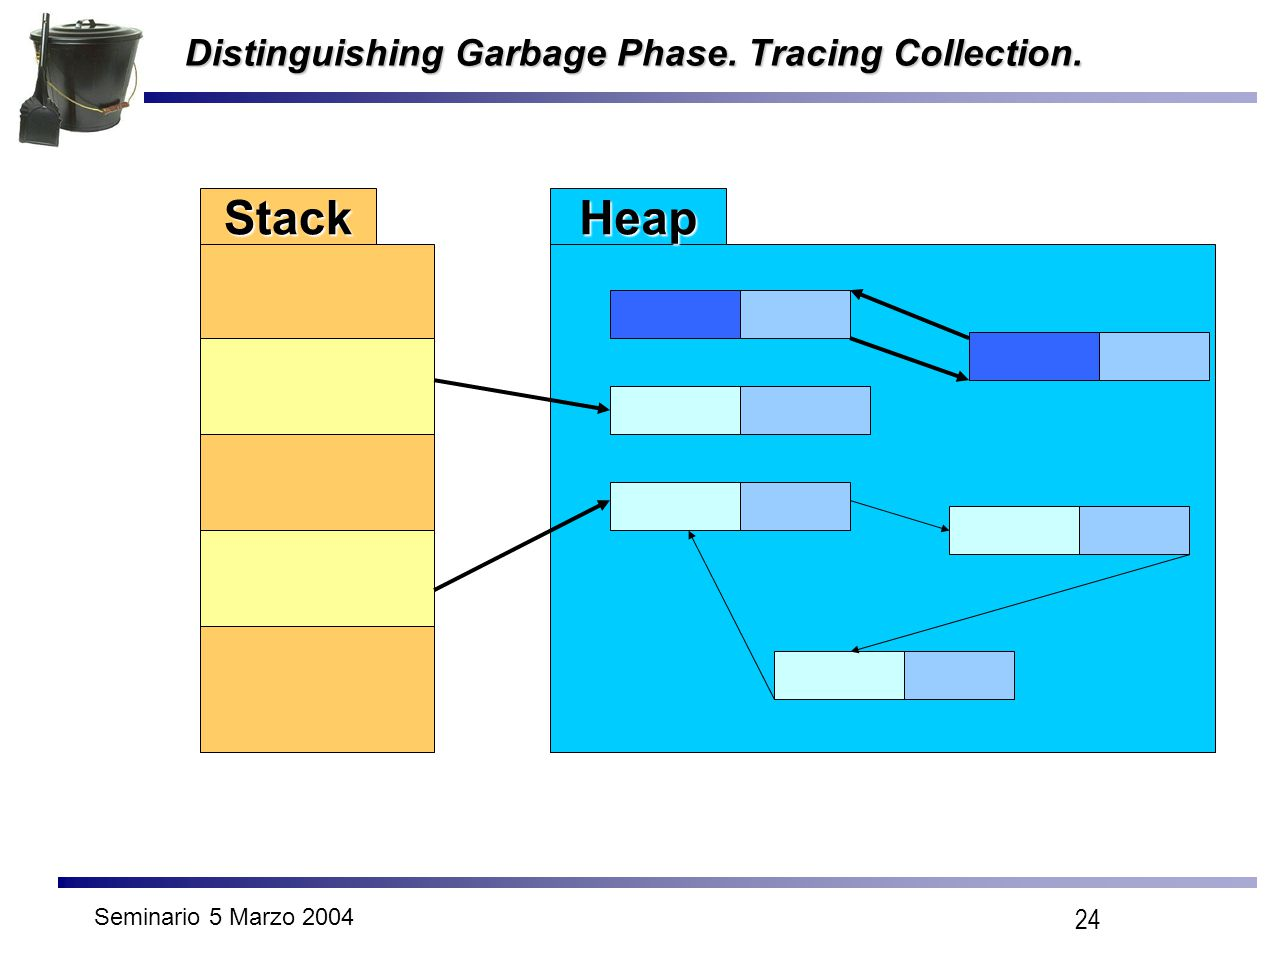 Seminario 5 Marzo 2004 24 Distinguishing Garbage Phase. Tracing Collection. StackHeap